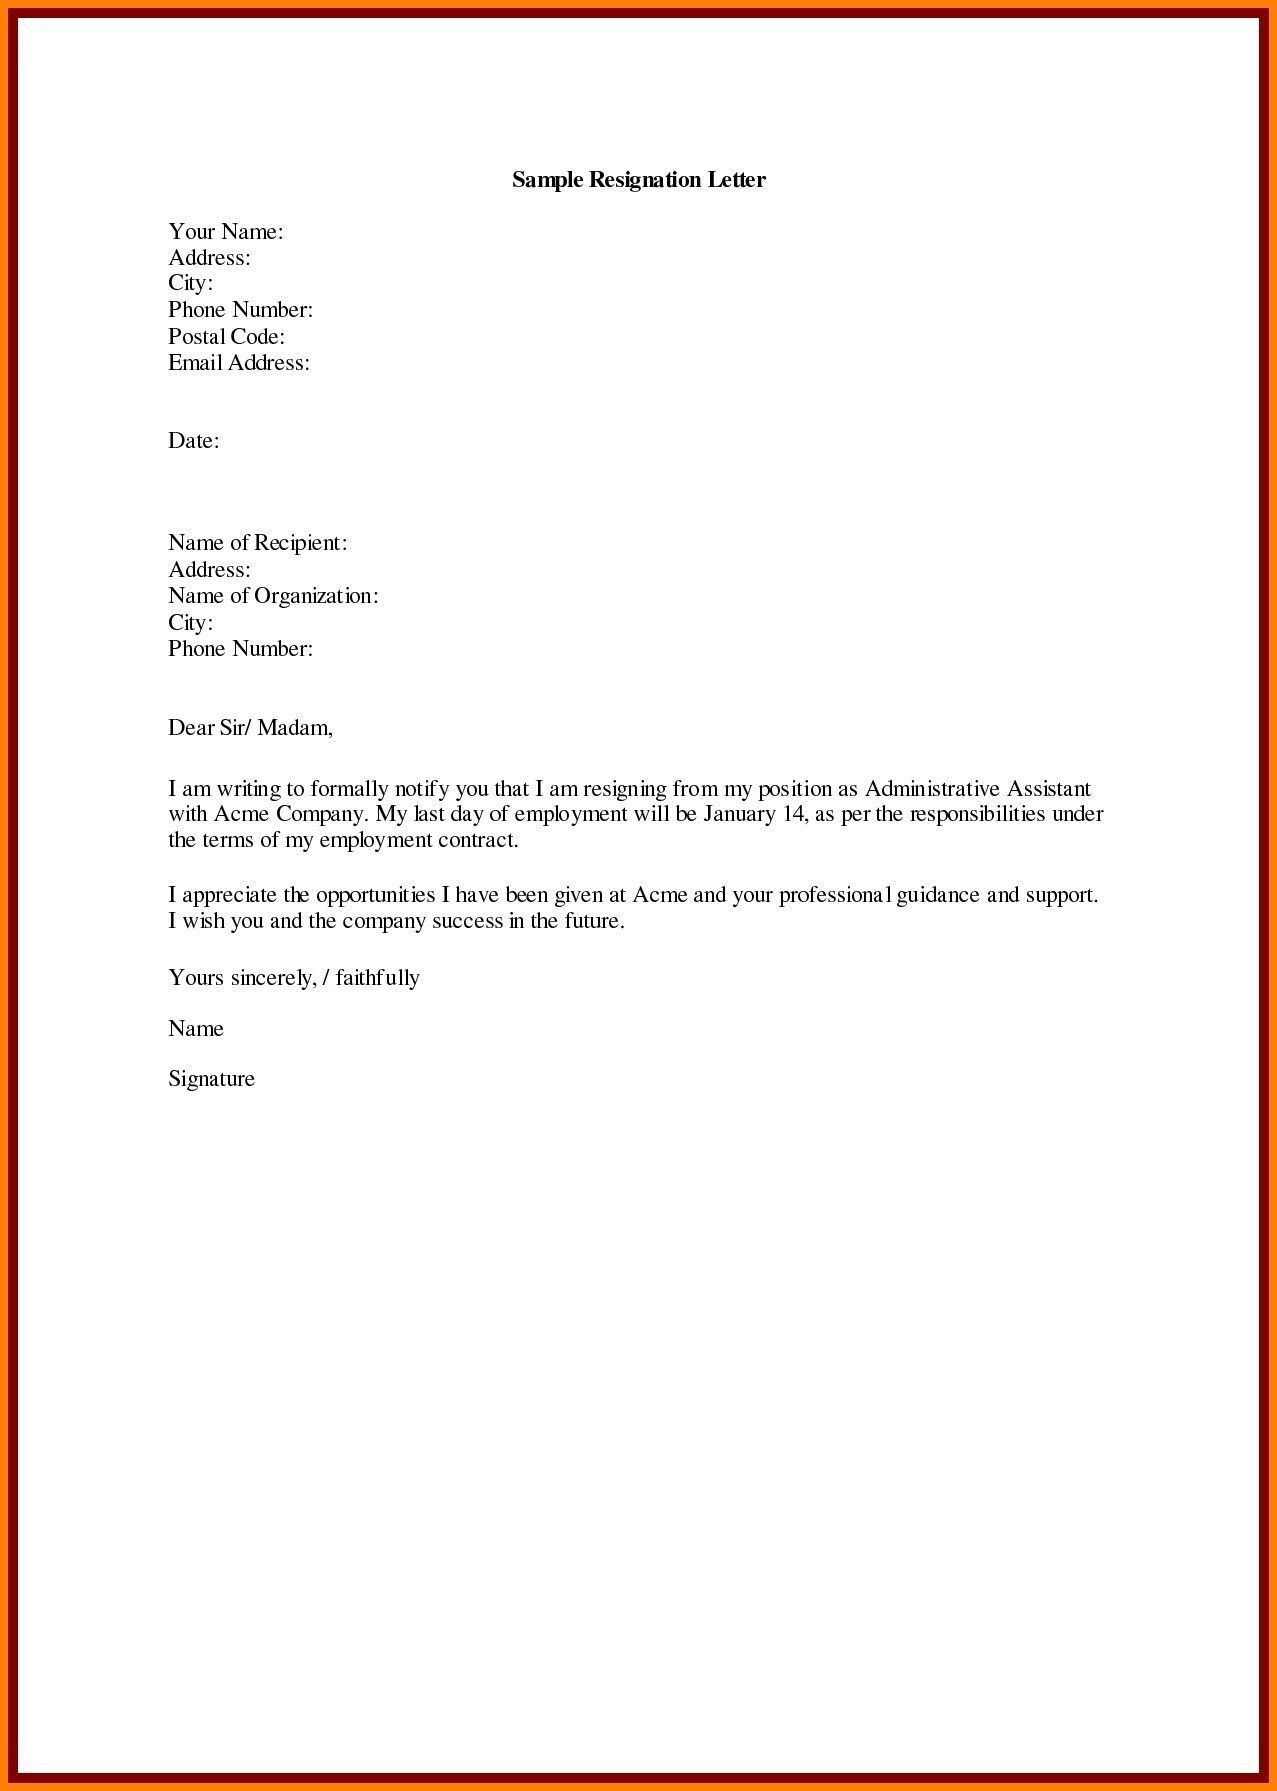 Regine Letter Format In English New Resignation Letter Format For